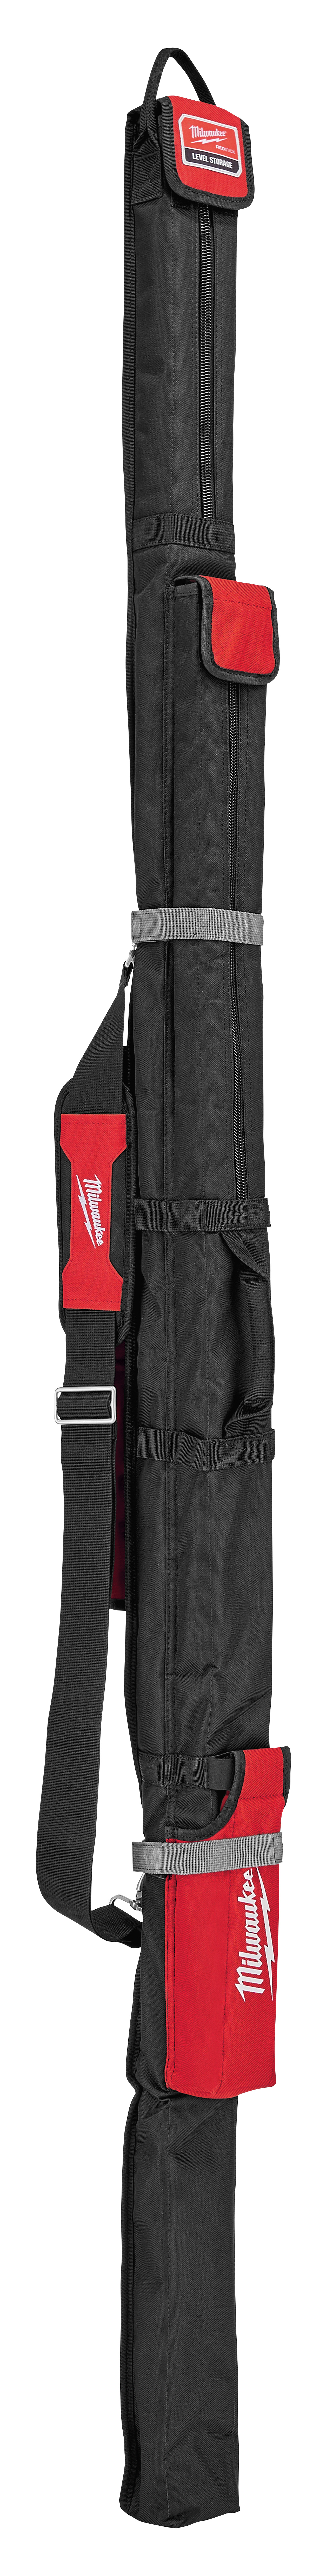 Milwaukee® MLSB78 Level Bag, For Use With 78 in Level, Zipper Closure, 4-Pockets, Nylon, Black/Red